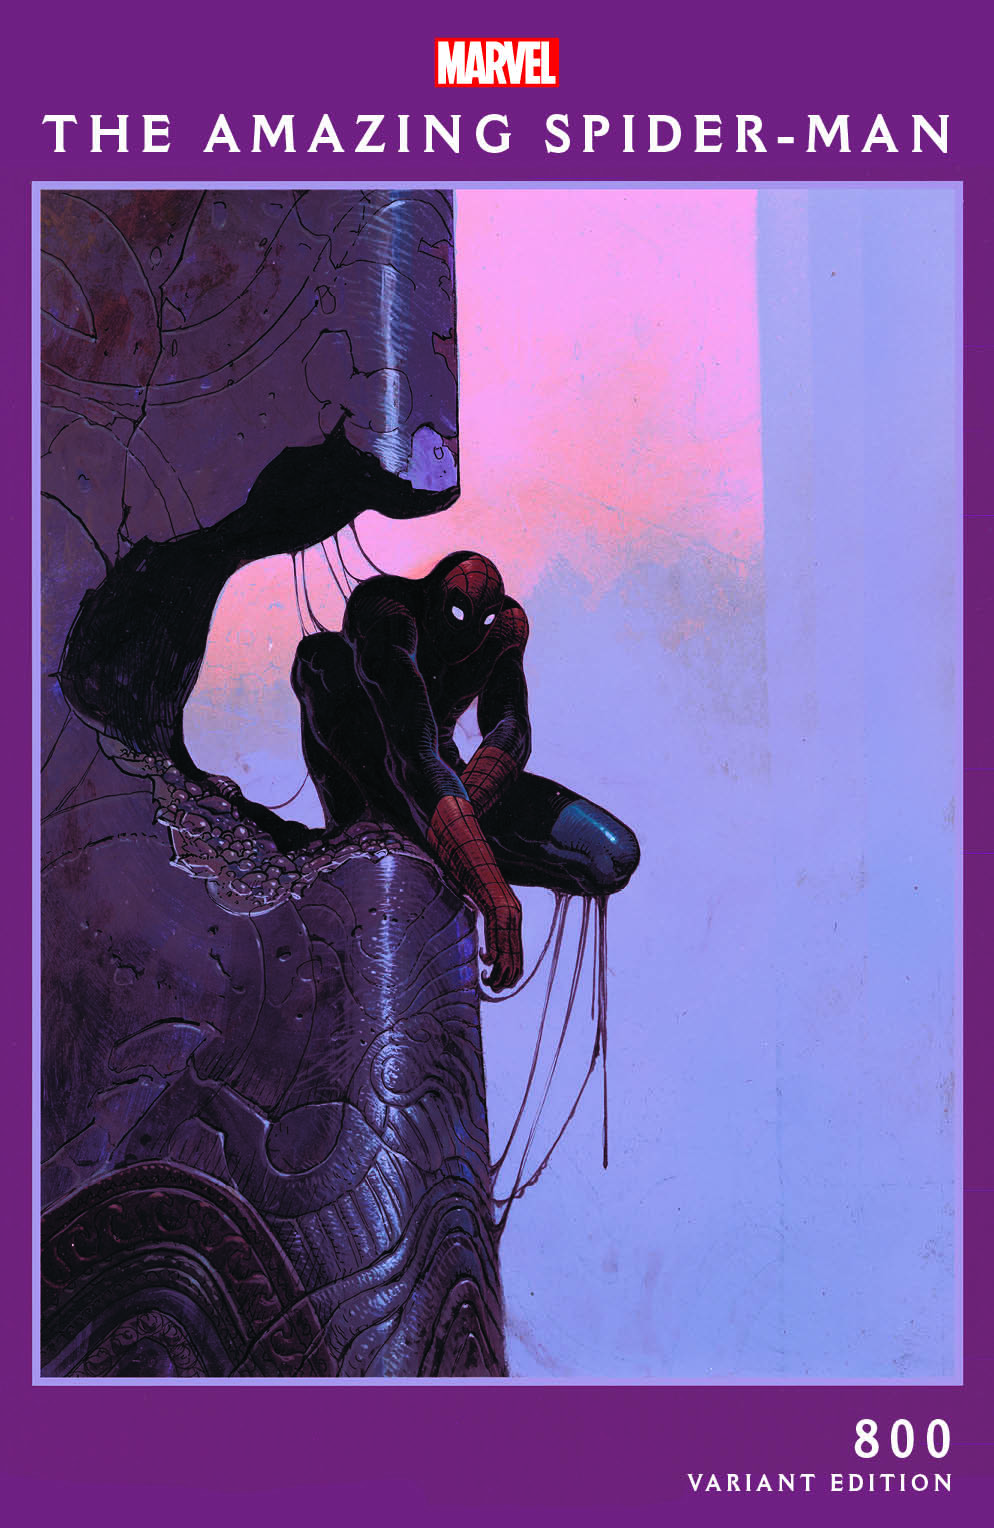 727086_the-amazing-spider-man-800-moebius-variant Moebius celebrates AMAZING SPIDER-MAN's 800th issue with two variants